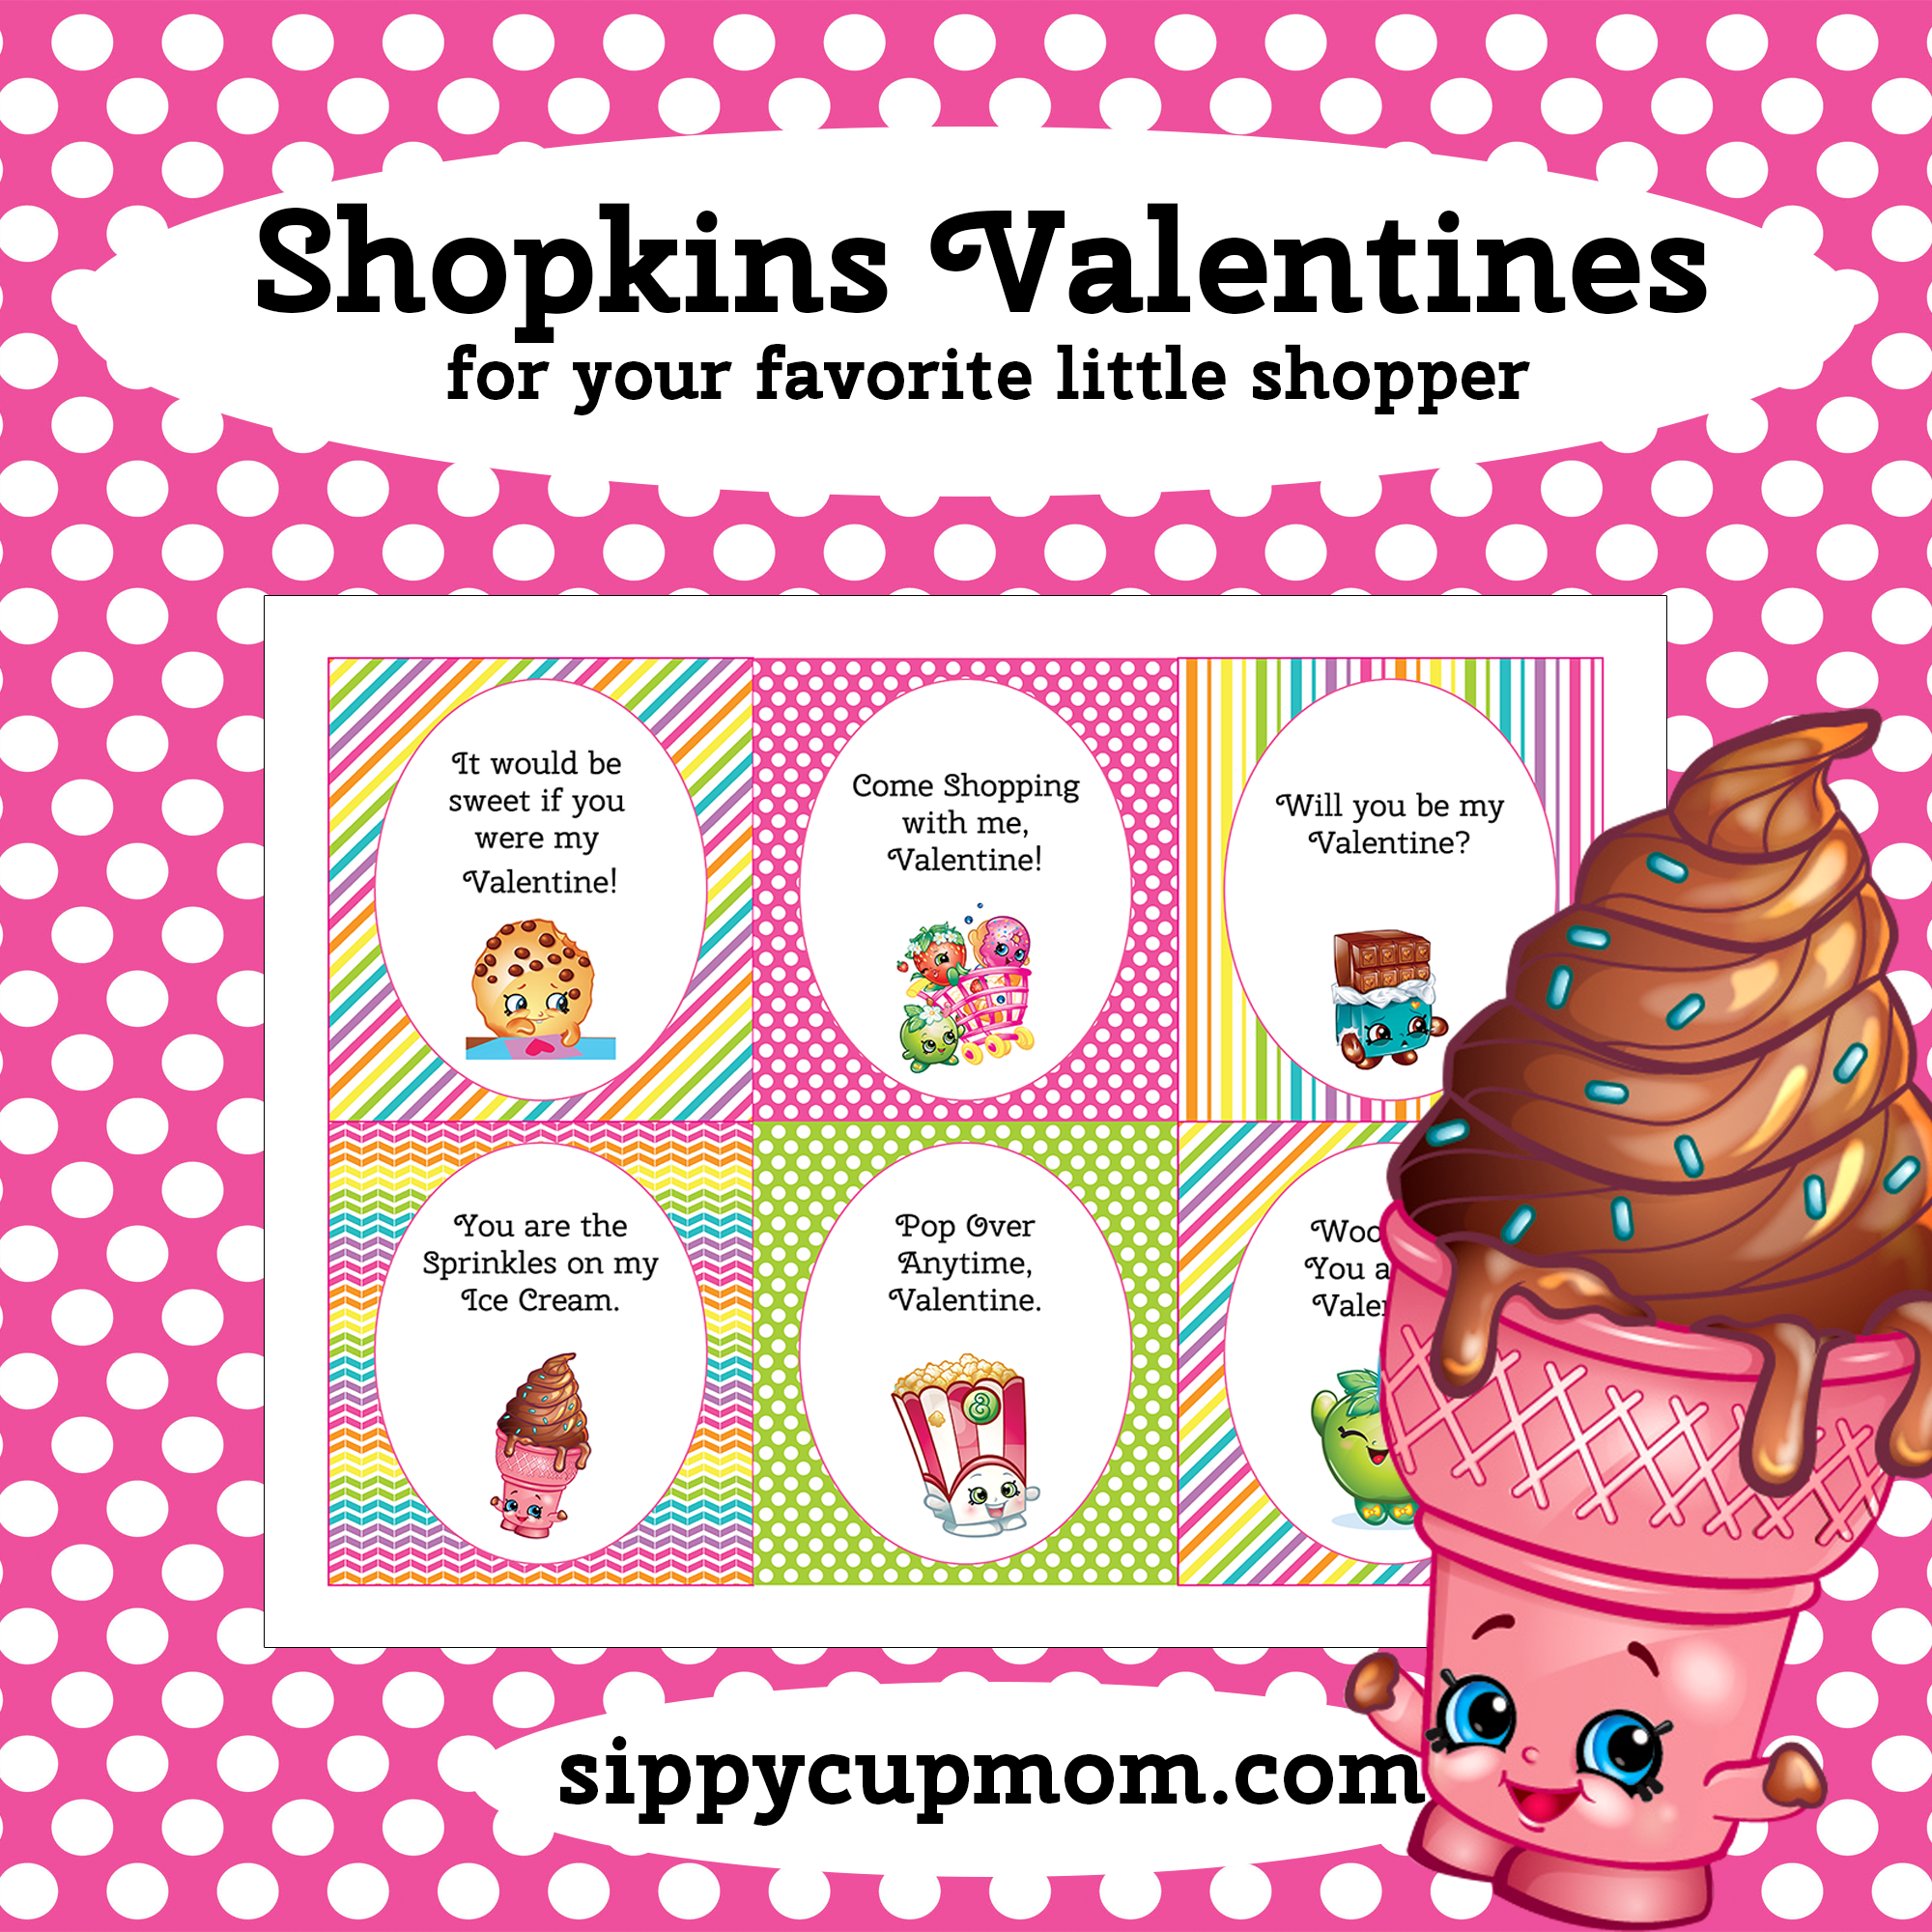 picture relating to Printable Shopkins Pictures named No cost Printable Shopkins Valentines Working day Playing cards - Sippy Cup Mother